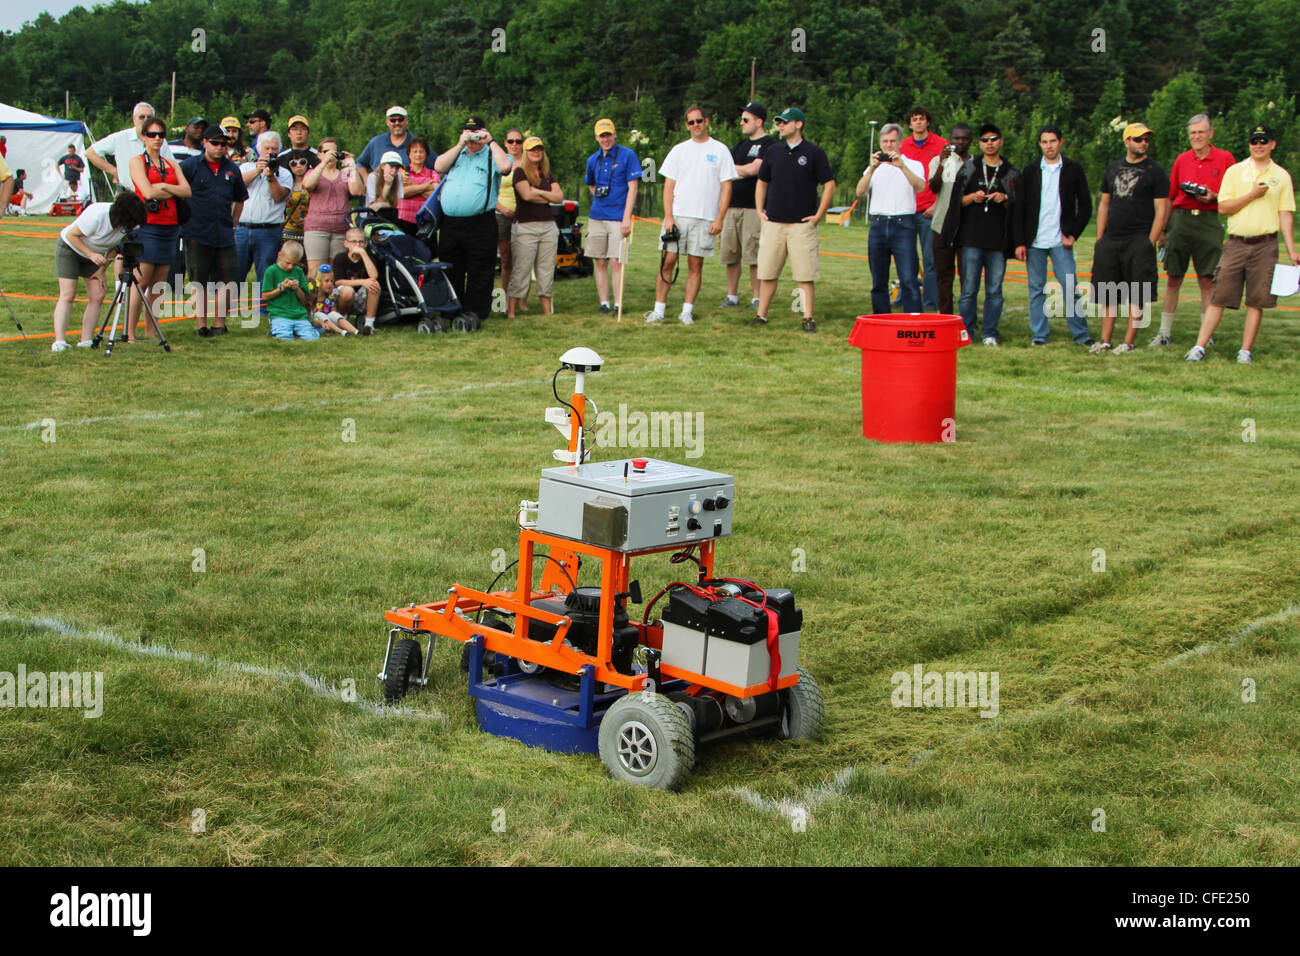 Experimental Robotic Lawn Mower by the team from University of Florida. - Stock Image